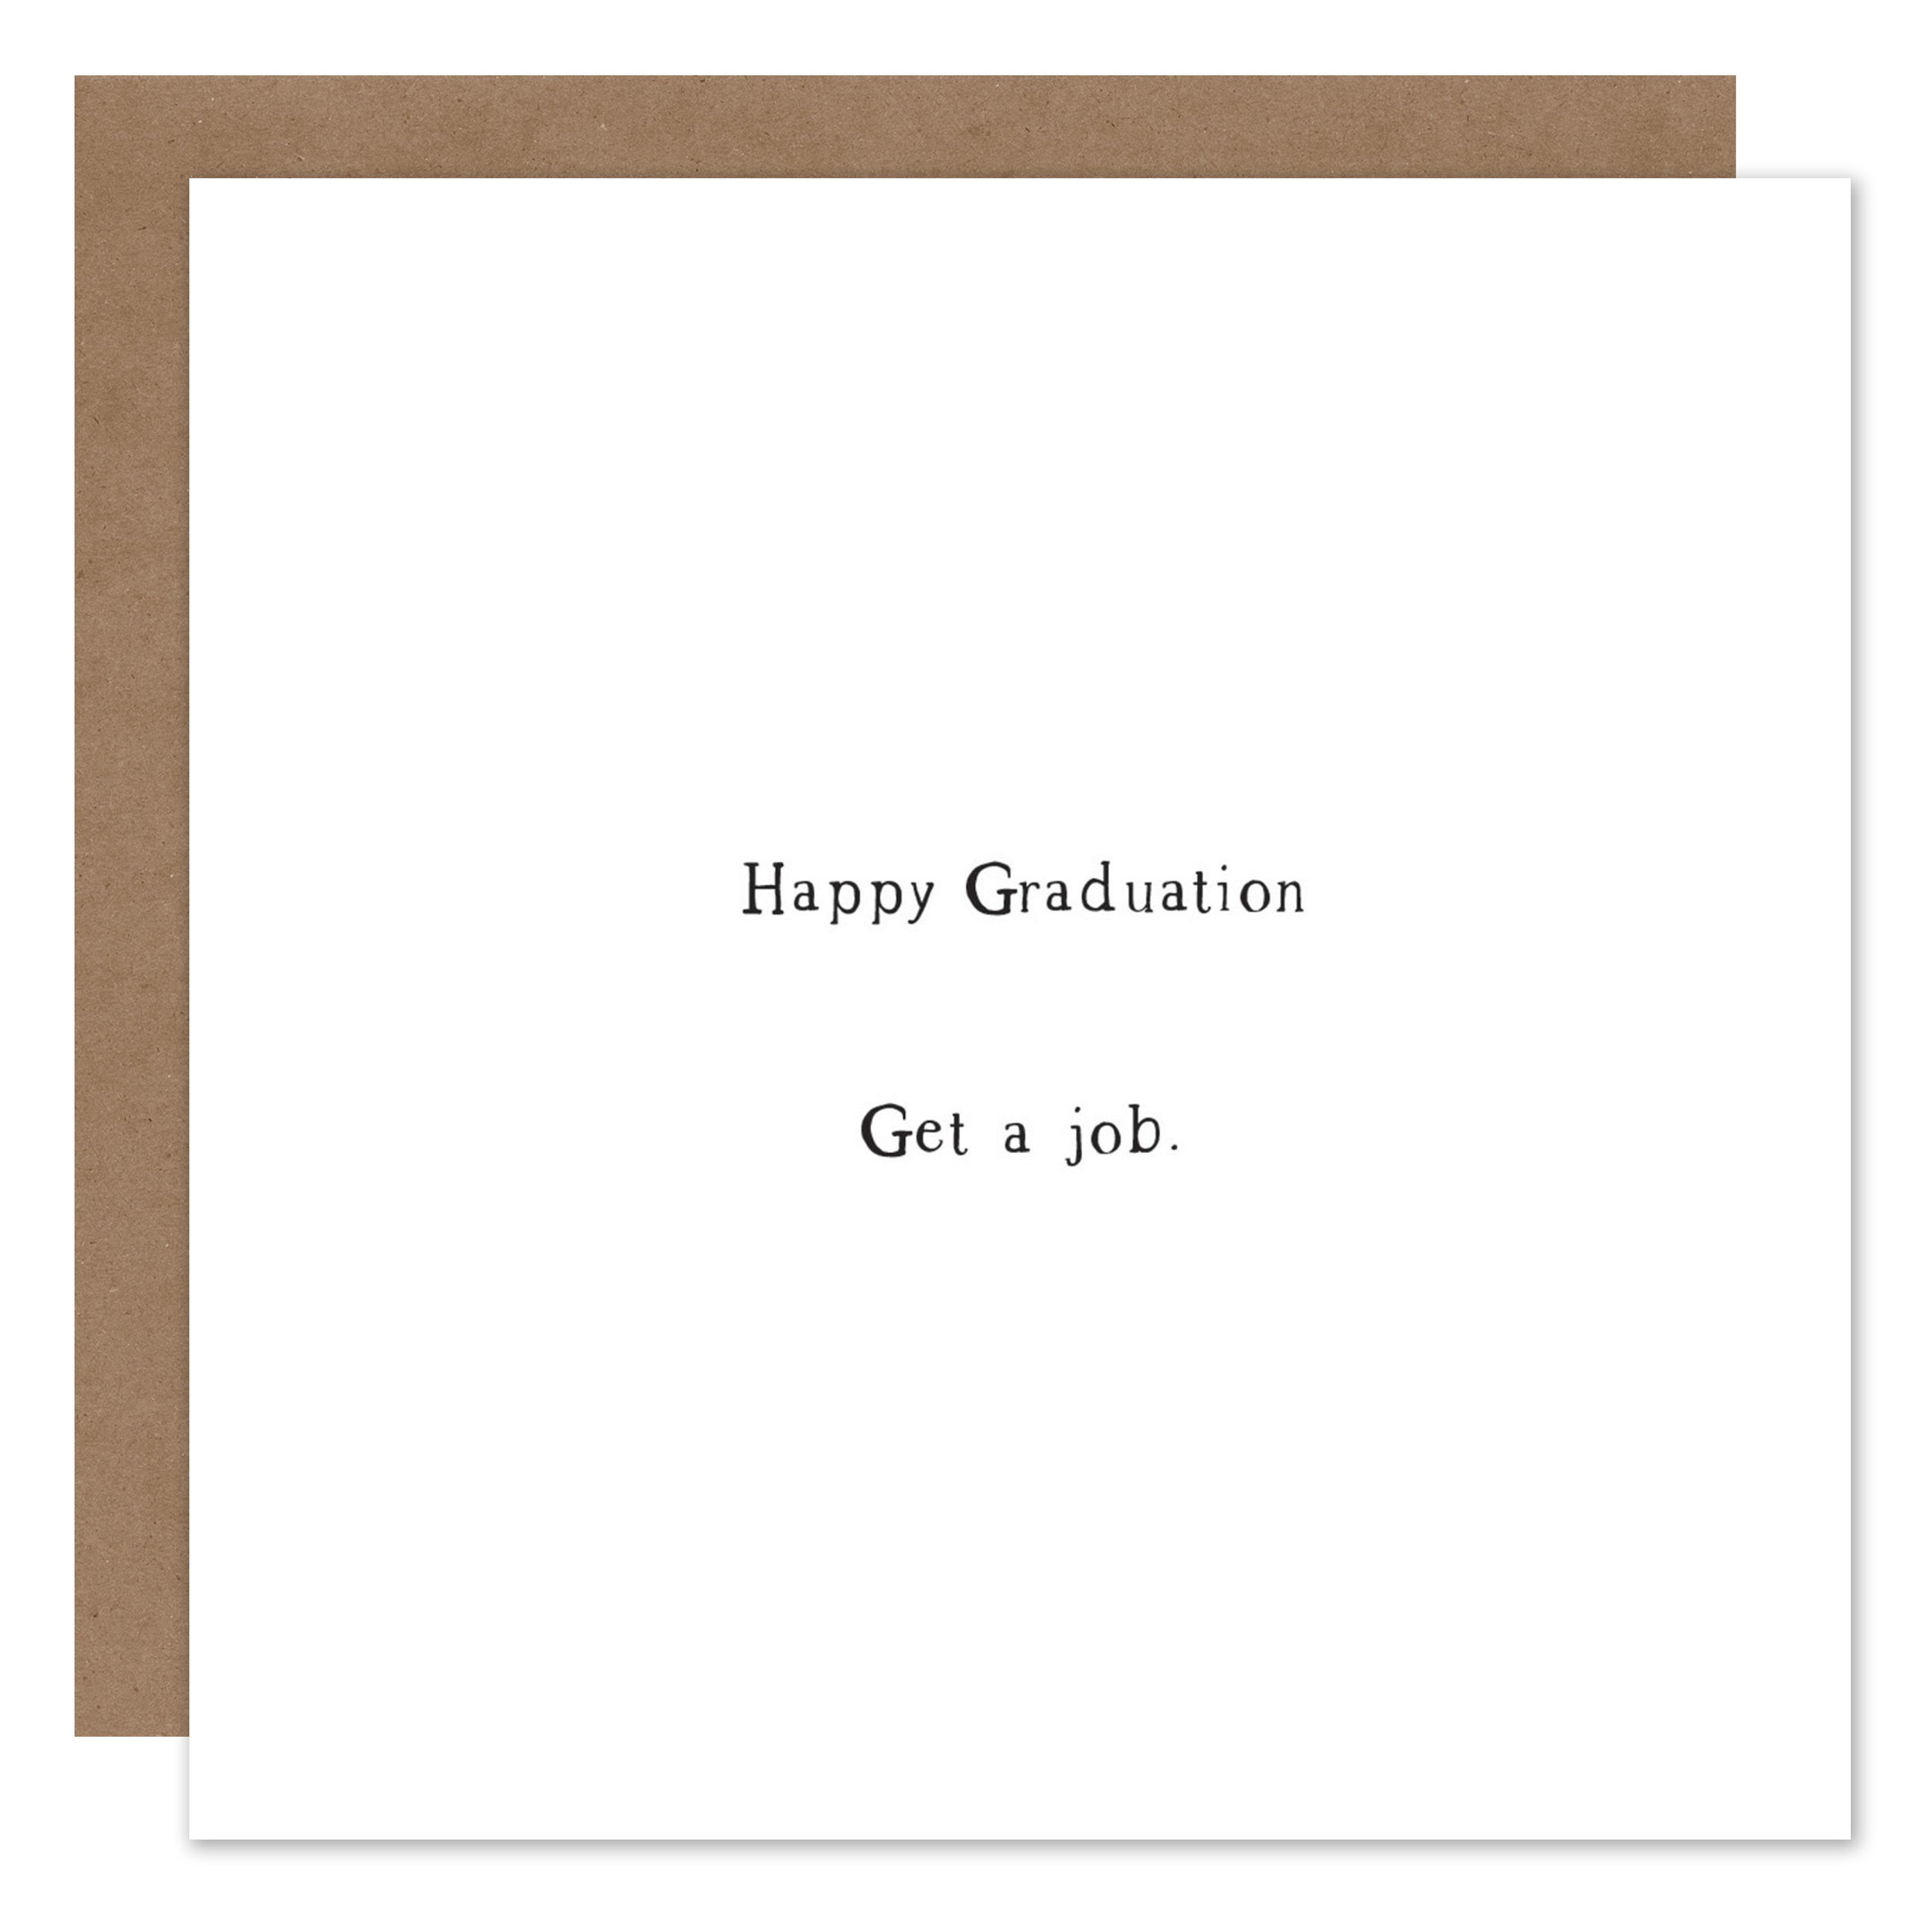 Happy Graduation, get a job moc.jpg